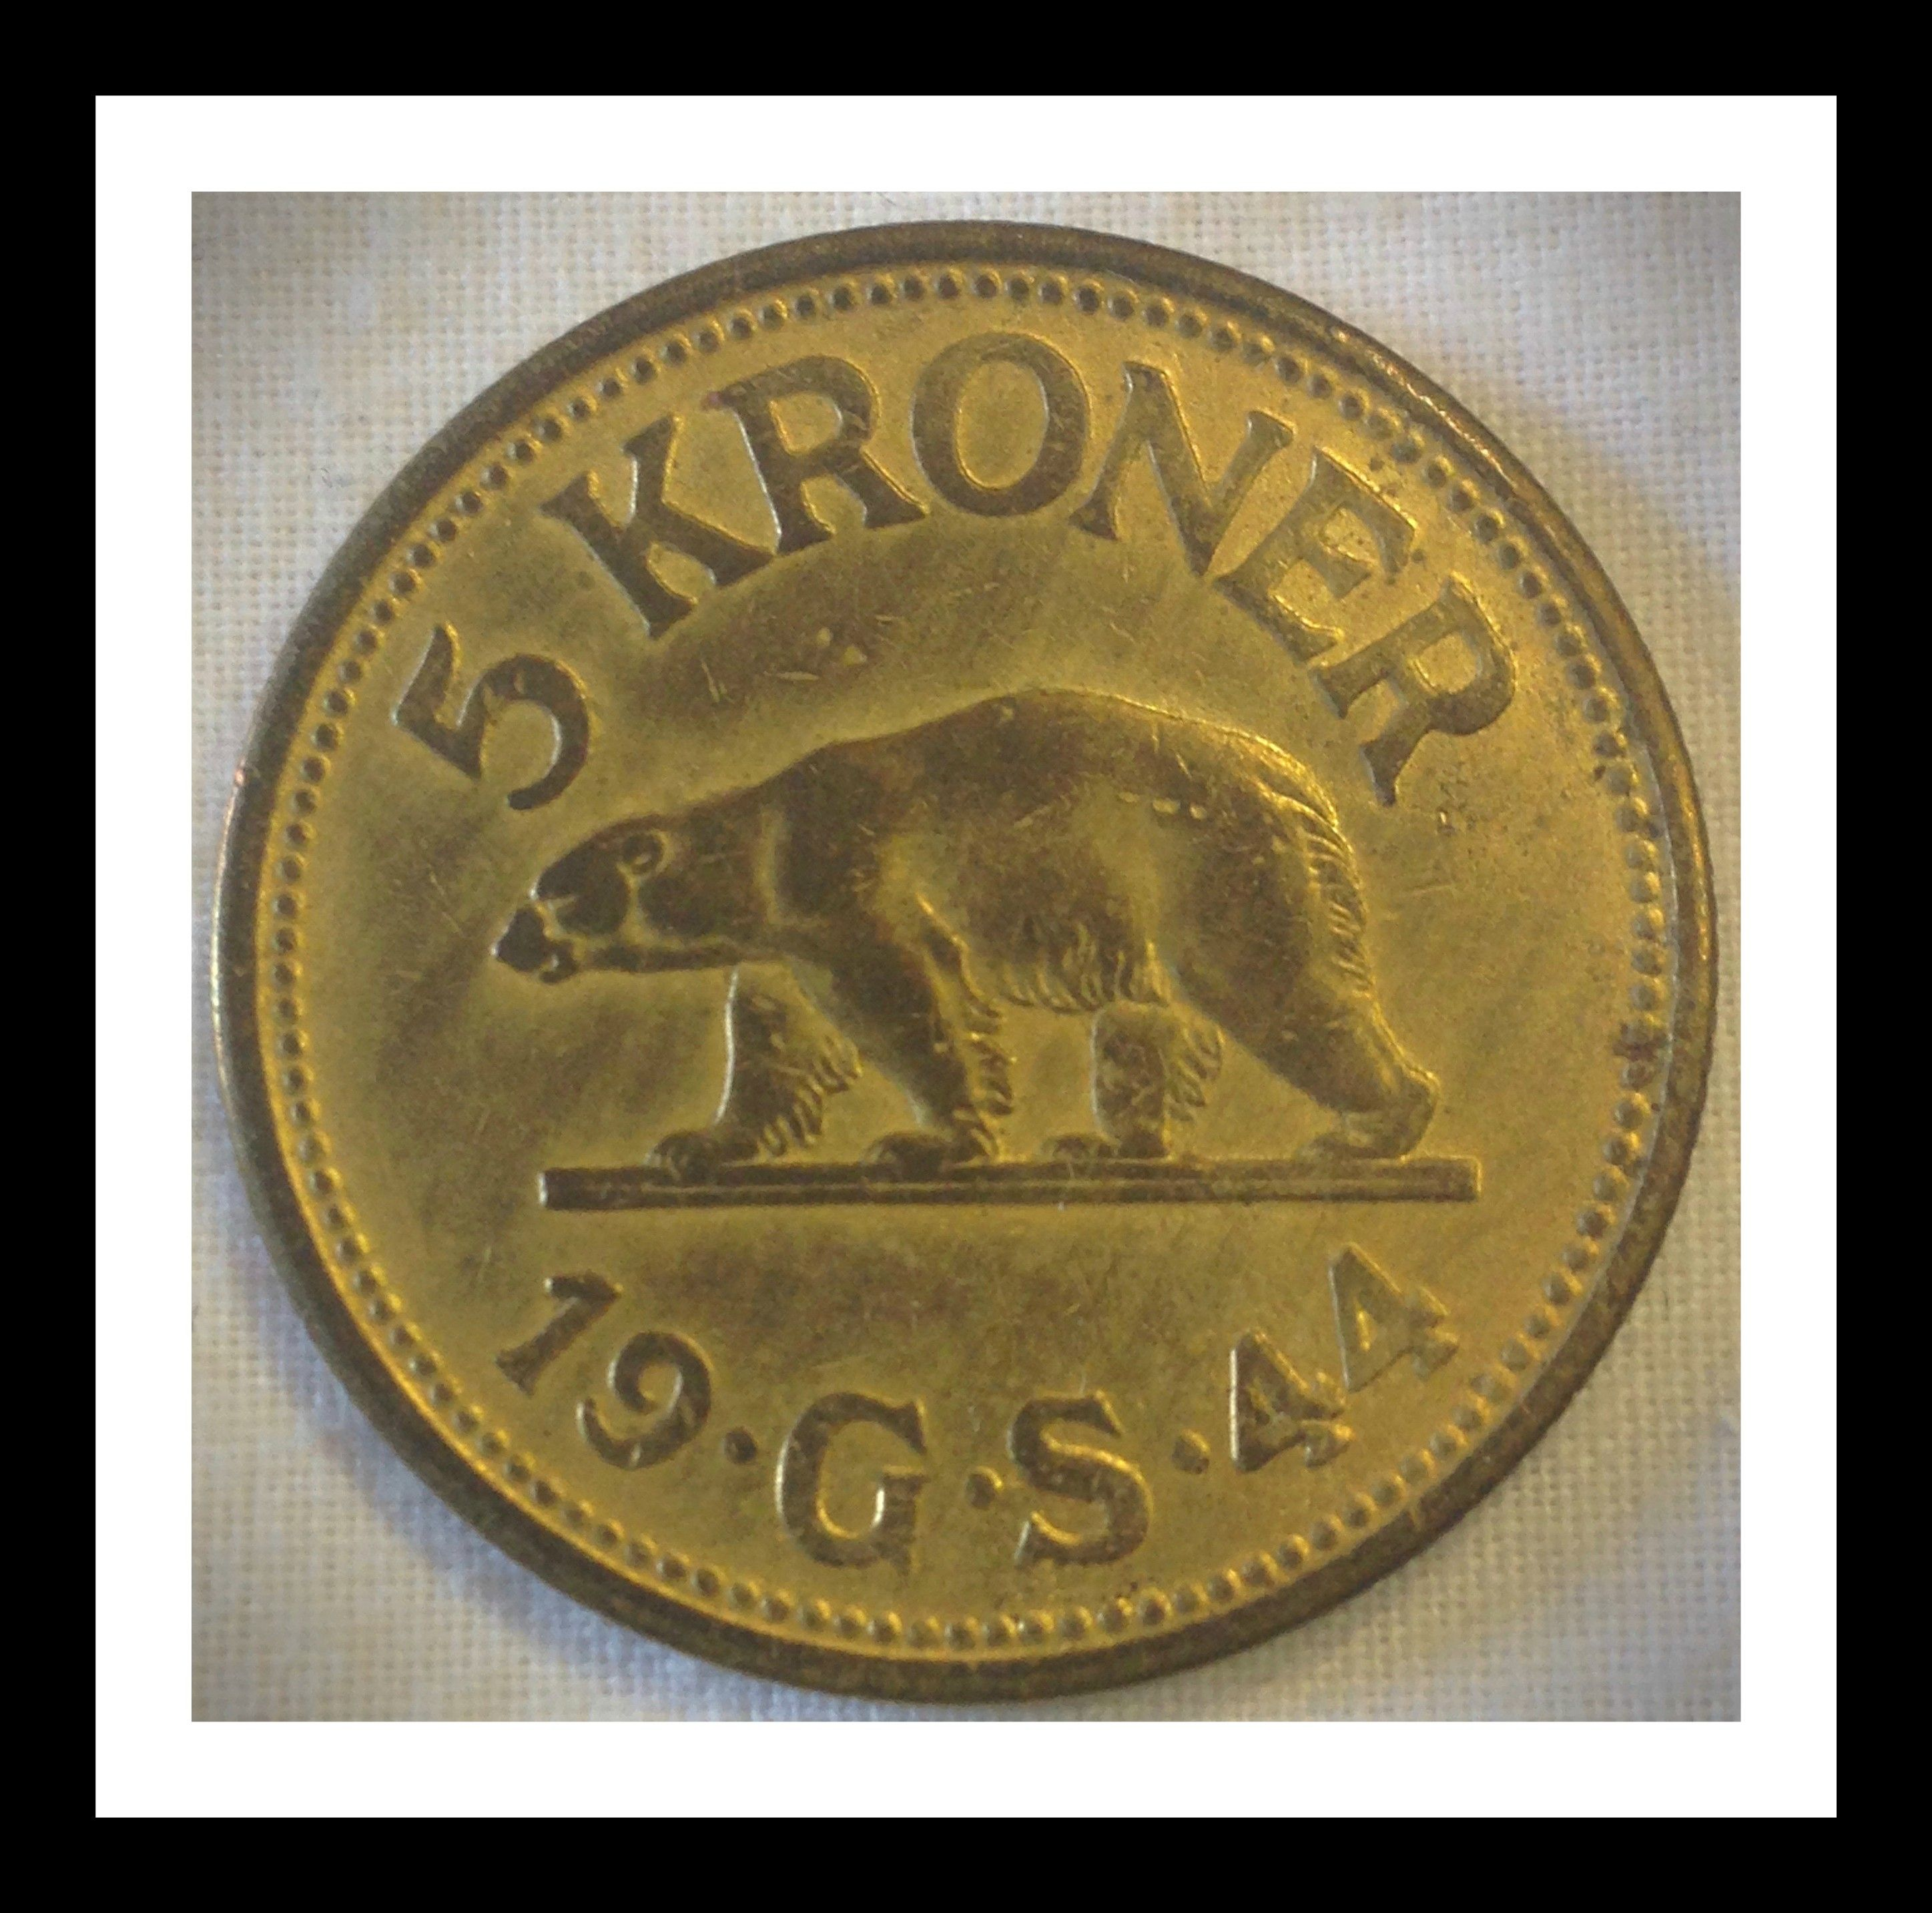 Greenland 5 Kroner 1944 Condition Vf This Rare Coin Was Minted For The Us Soldiers Stationed In Greenland During World War 2 The Coins Were Actua Krone Penge